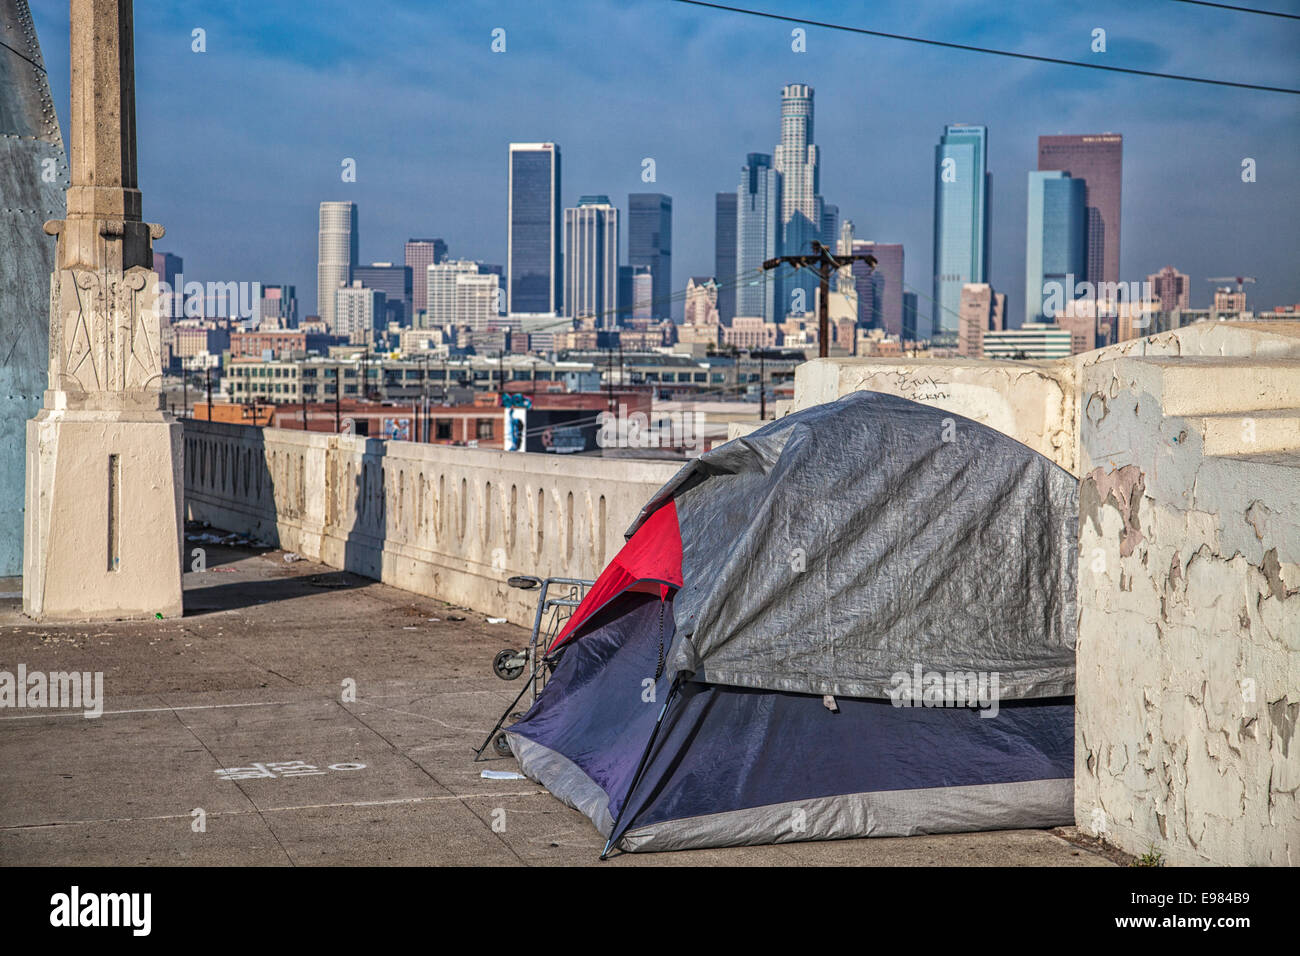 Tent of homeless person on 6th Street Bridge with Los Angeles skyline in the background. California USA & Tent of homeless person on 6th Street Bridge with Los Angeles ...